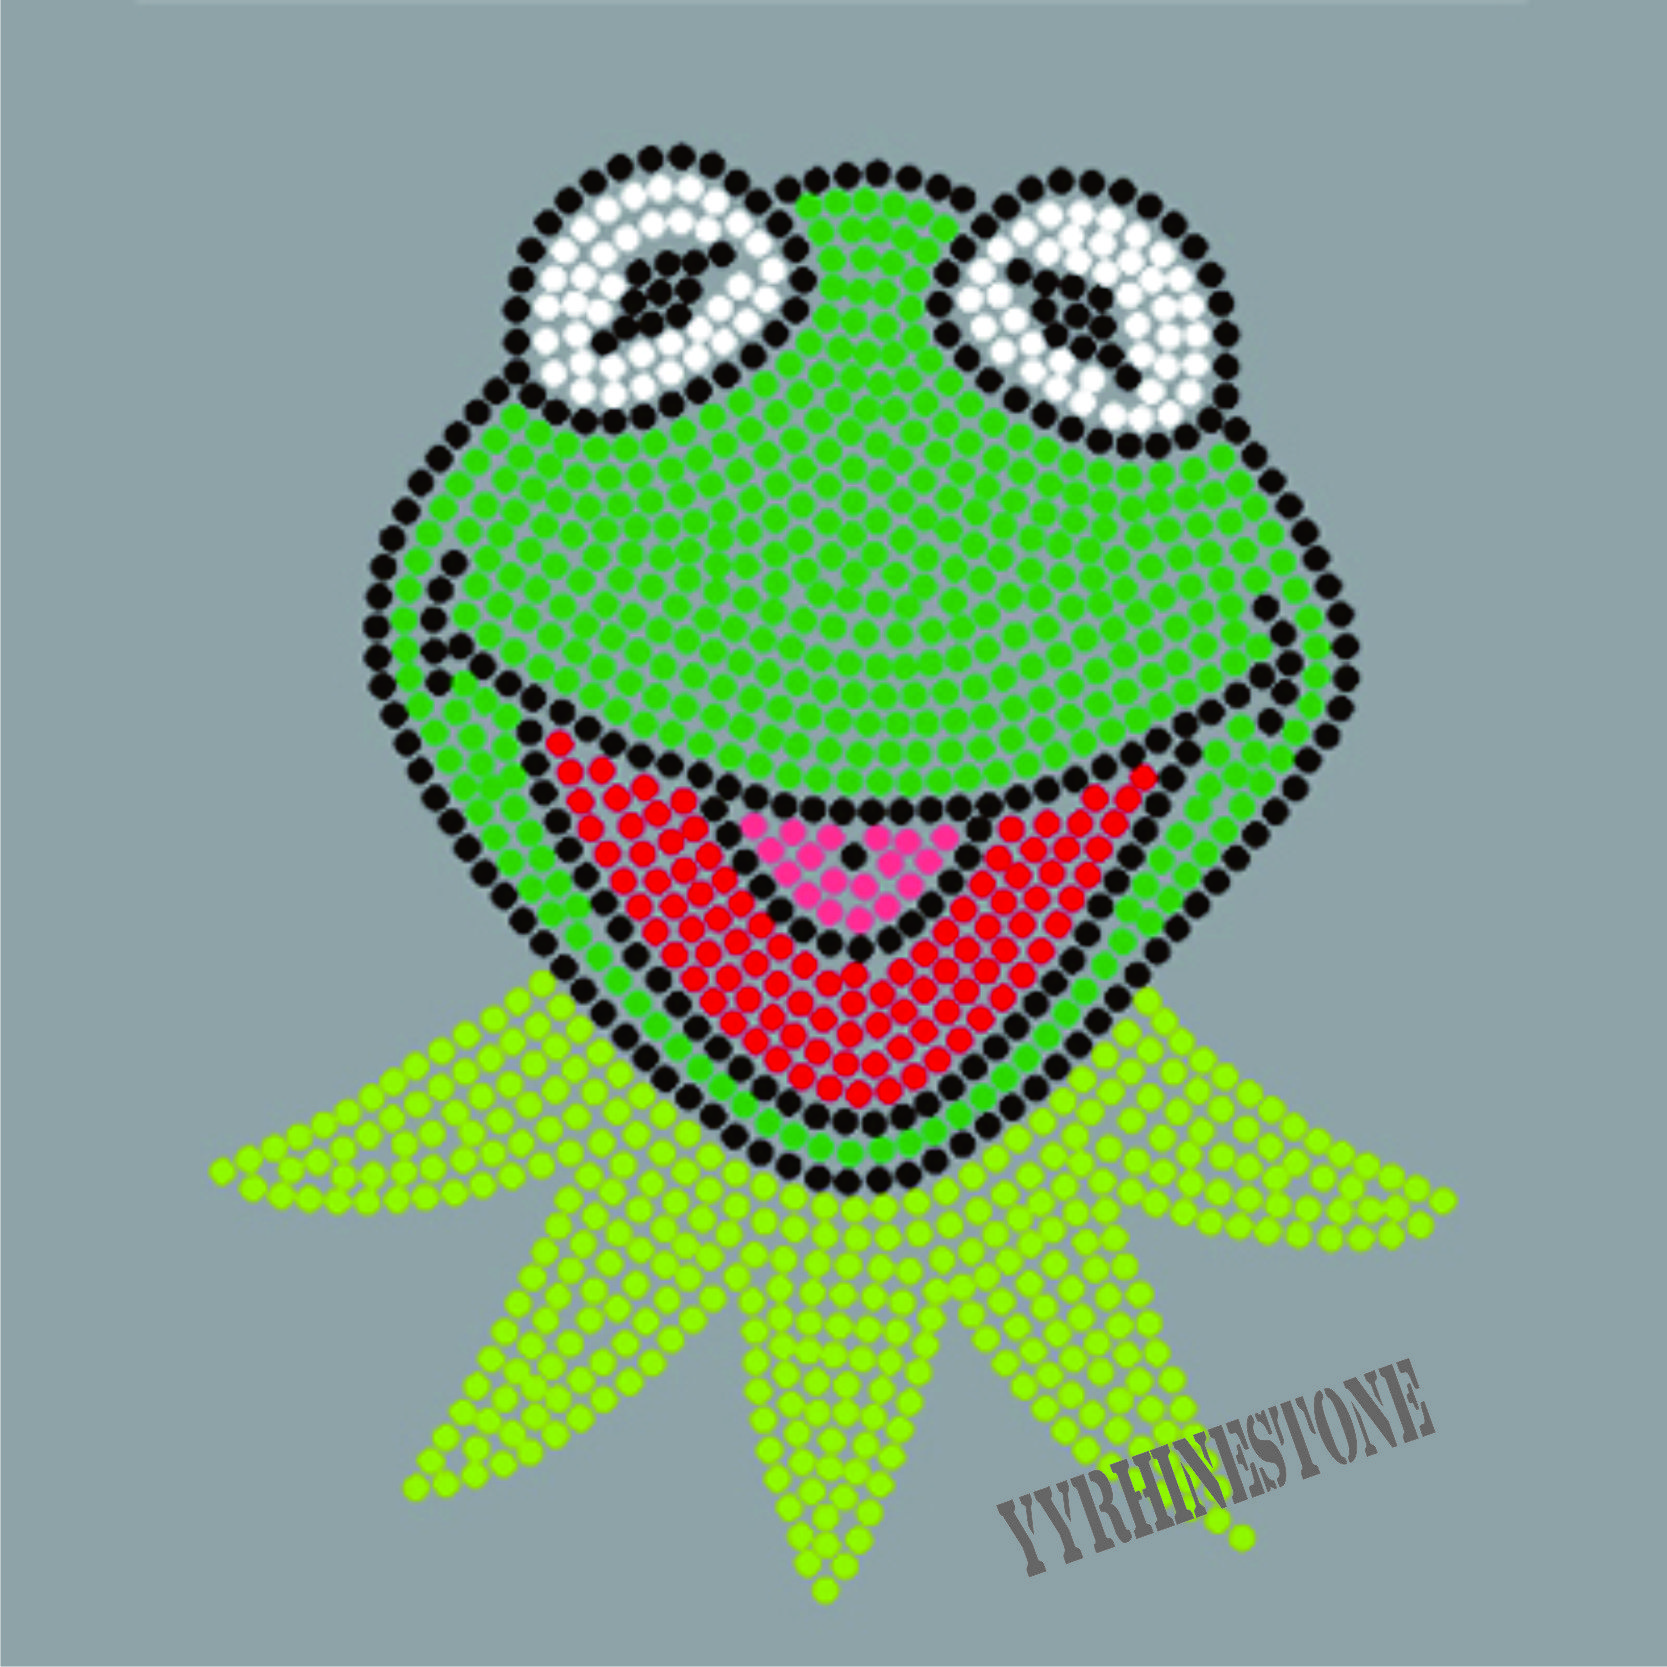 Kermit the Frog Iron On Rhinestone Transfer